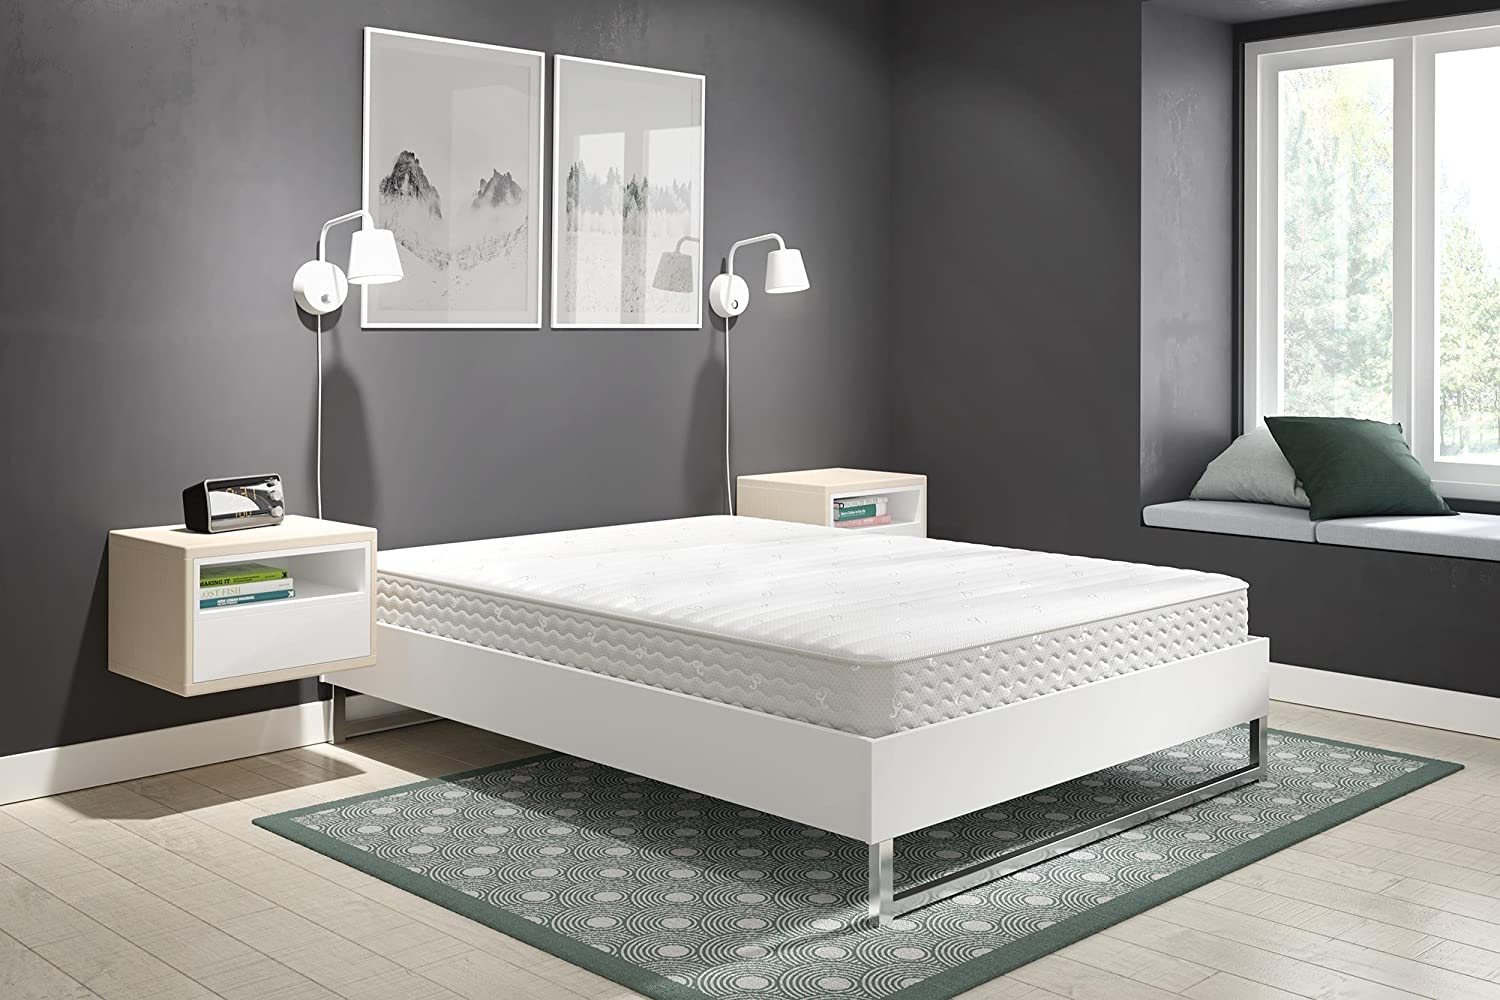 Signature Sleep Mattress Black Friday Deals 2020